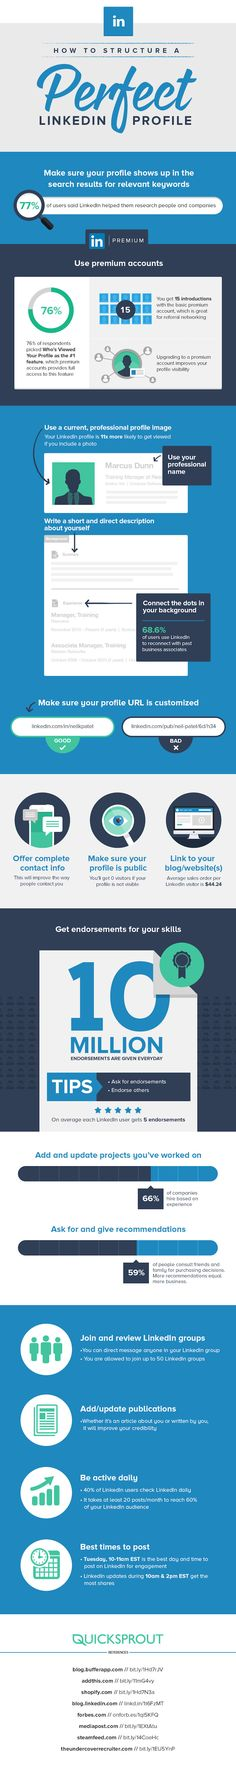 How to Structure a Perfect #LinkedIn Profile - #infographic #socialmedia